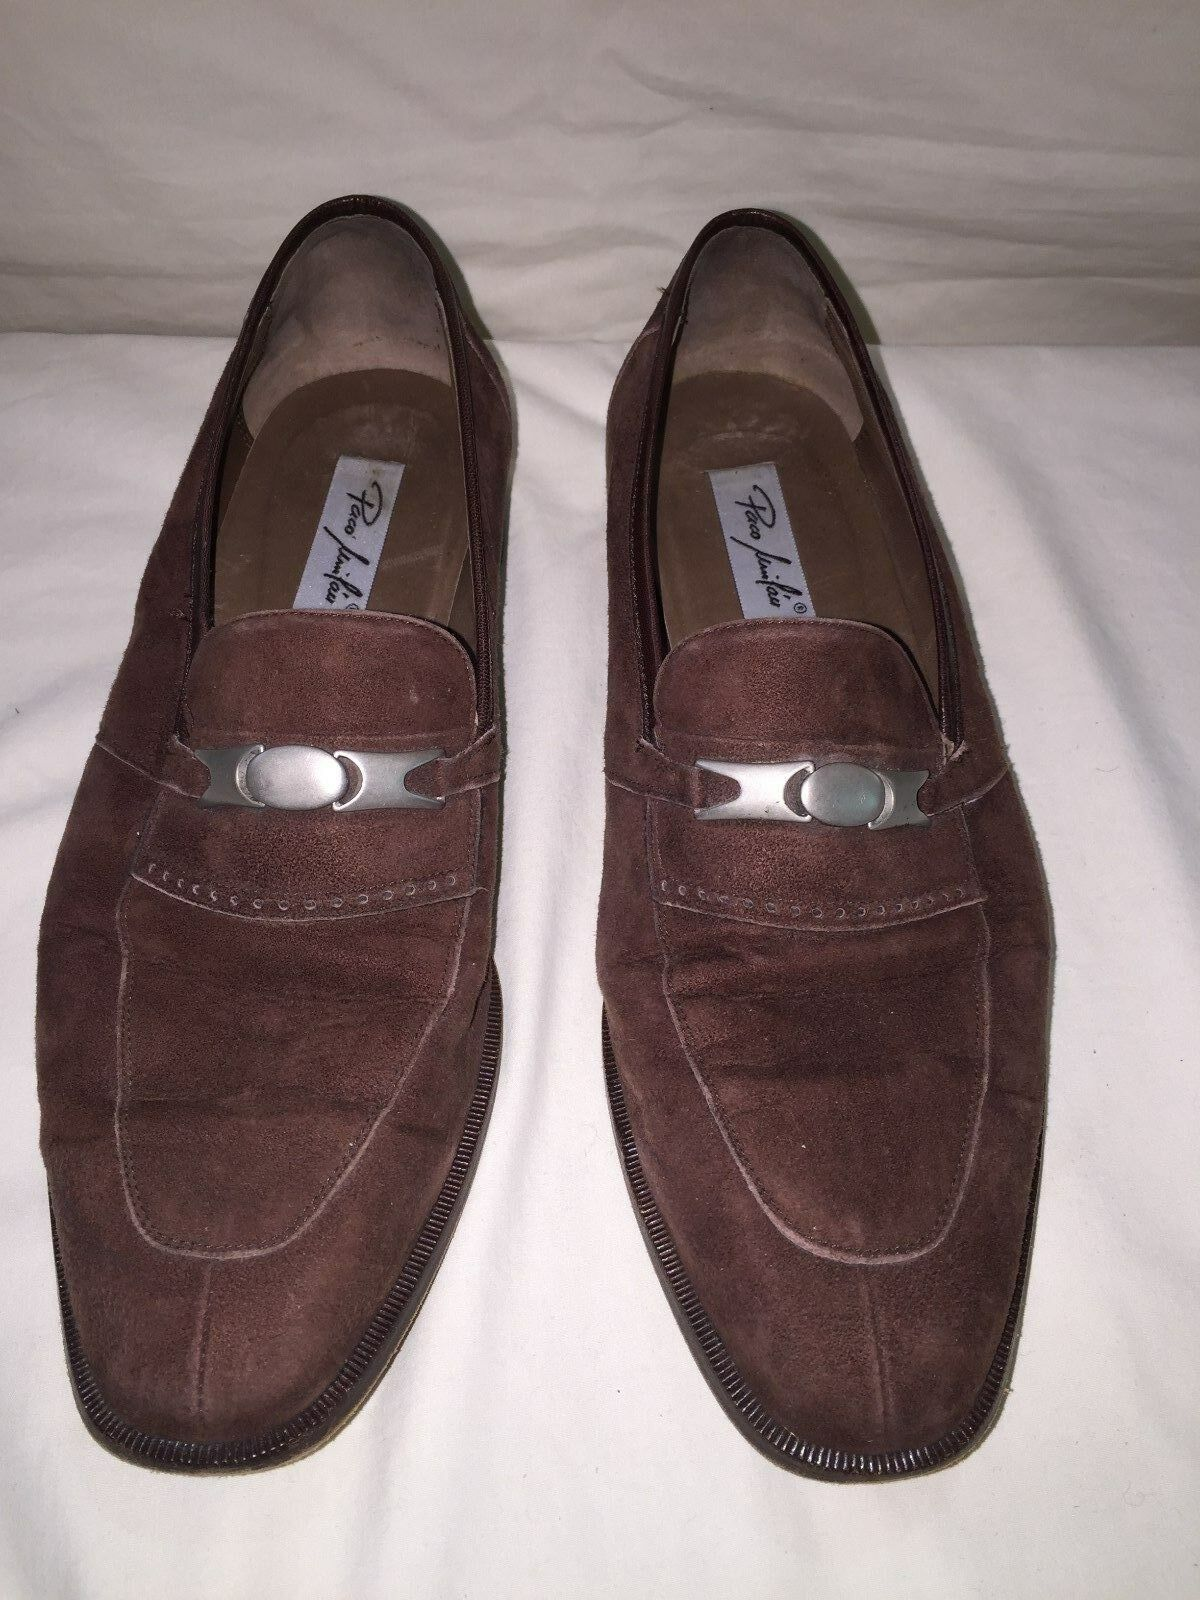 Paco Lui Lau Suede Slip on shoes Loafers Made in Spain by Cortina Size 10.5